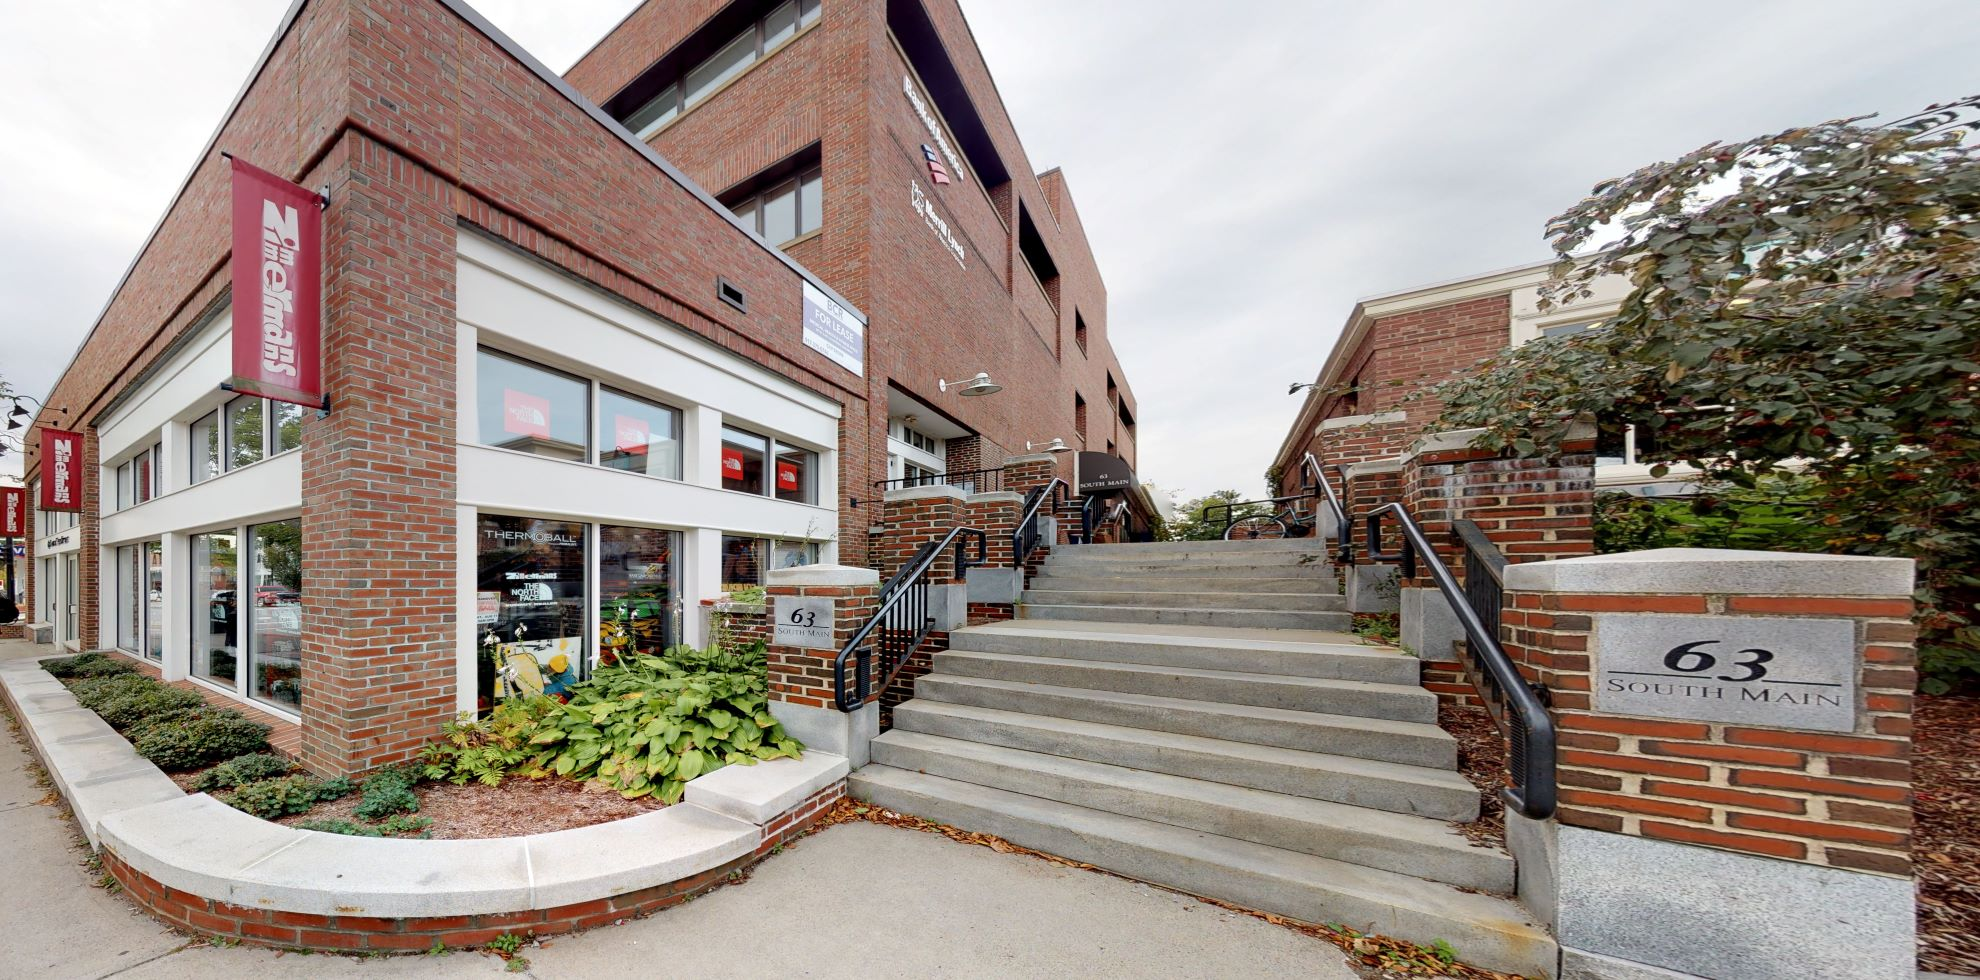 Bank of America financial center with drive-thru ATM | 63 S Main St, Hanover, NH 03755